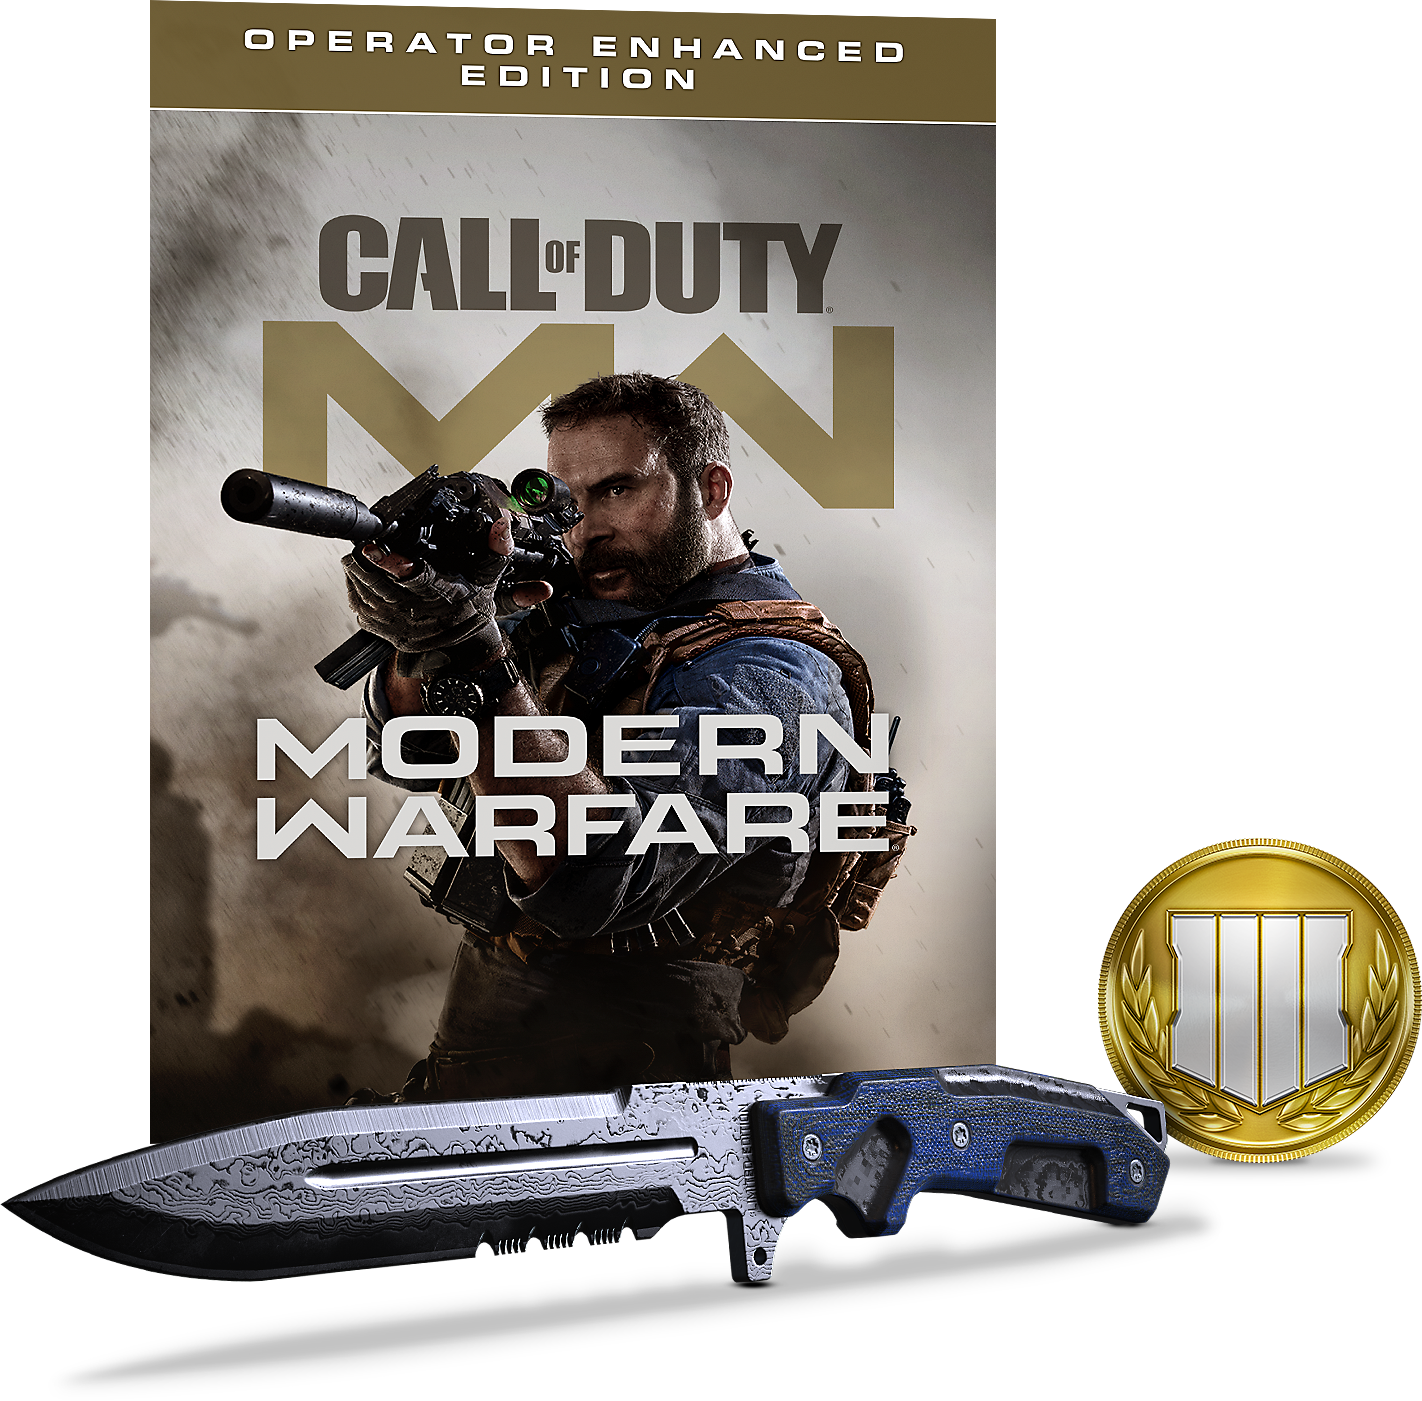 Call-of-Duty-Modern-Warfare-2019-product-activation-keys